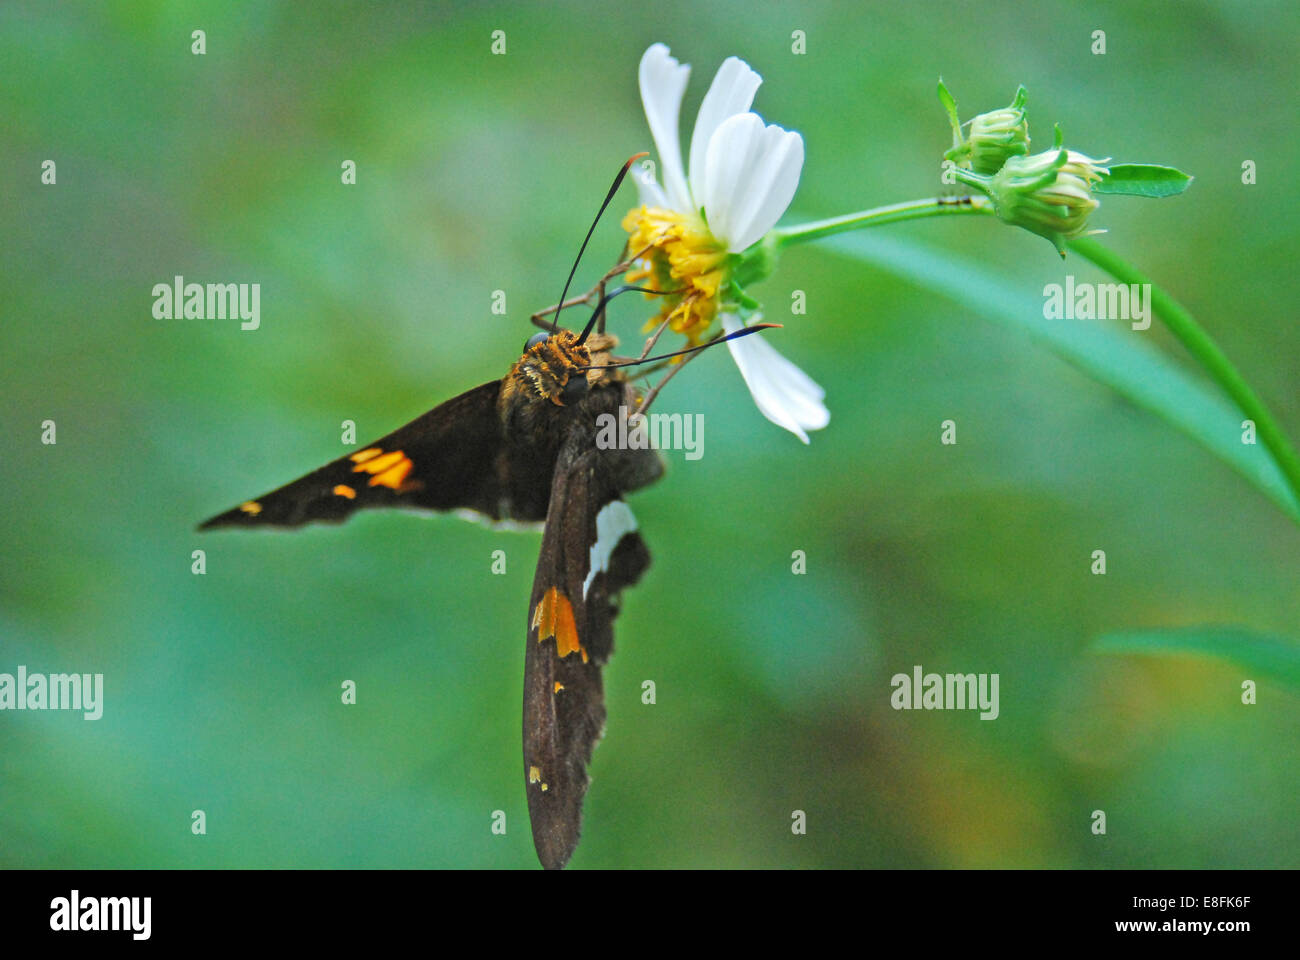 USA, Florida, Orange County, Orlando, Moth on wild daisy sipping on nectar - Stock Image